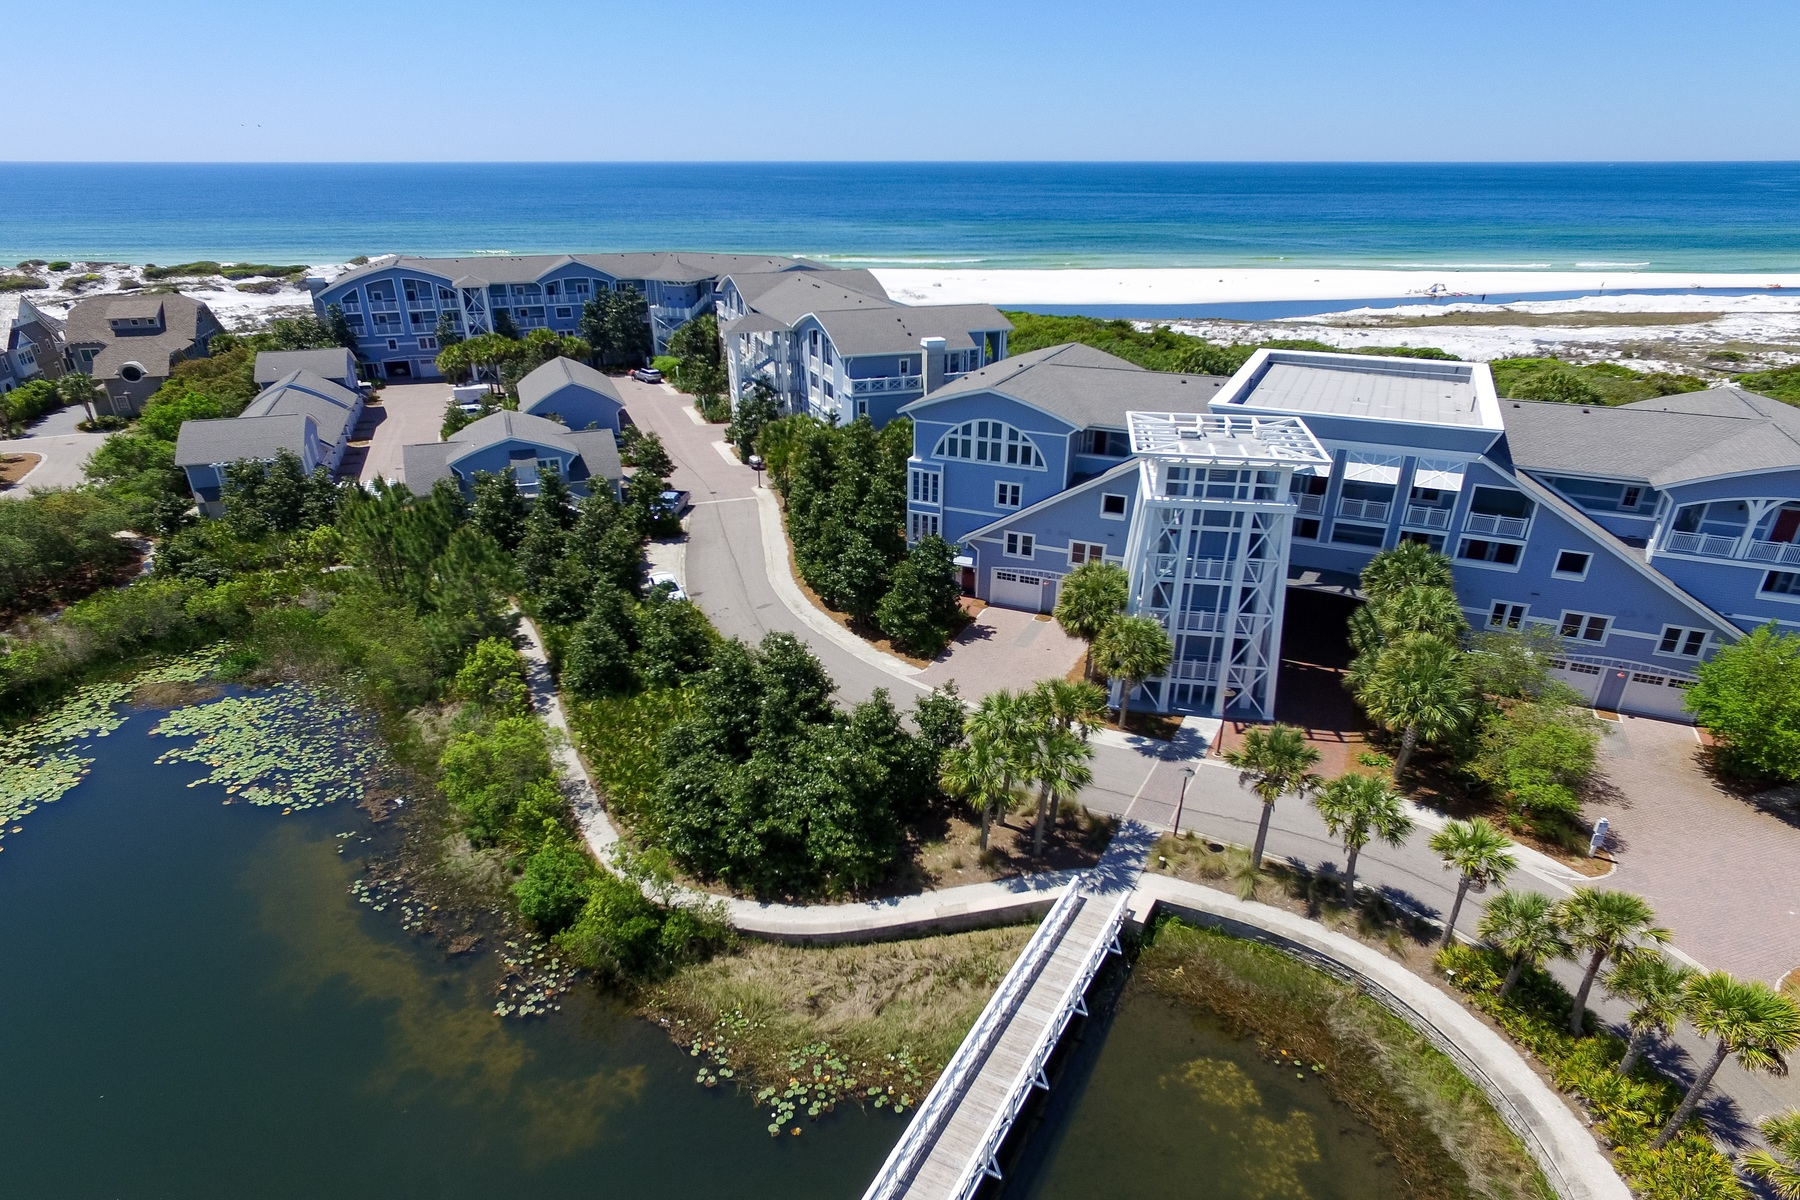 Condominium for Sale at TOP FLOOR RETREAT CAPTURING STUNNING VIEWS OF GULF AND BEACH 100 S Bridge Lane C427 Watersound, Florida, 32461 United States